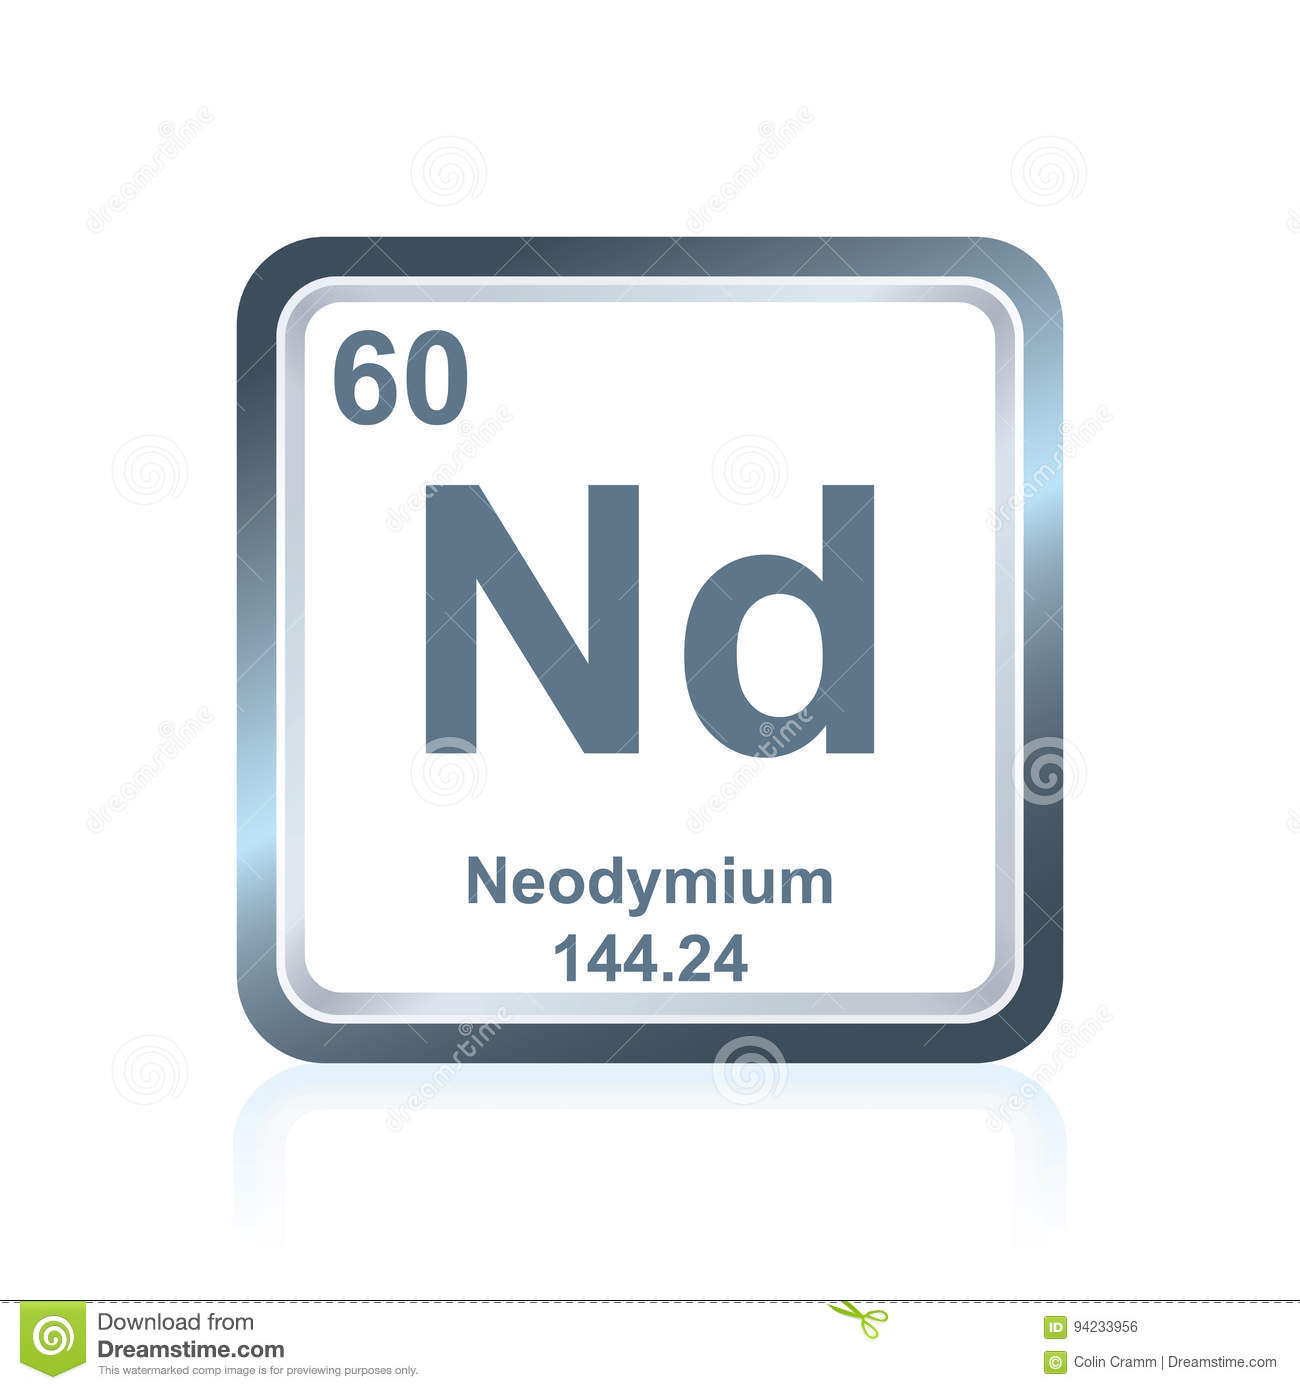 Chemical element neodymium from the periodic table stock royalty free illustration download chemical element neodymium from the periodic table gamestrikefo Choice Image